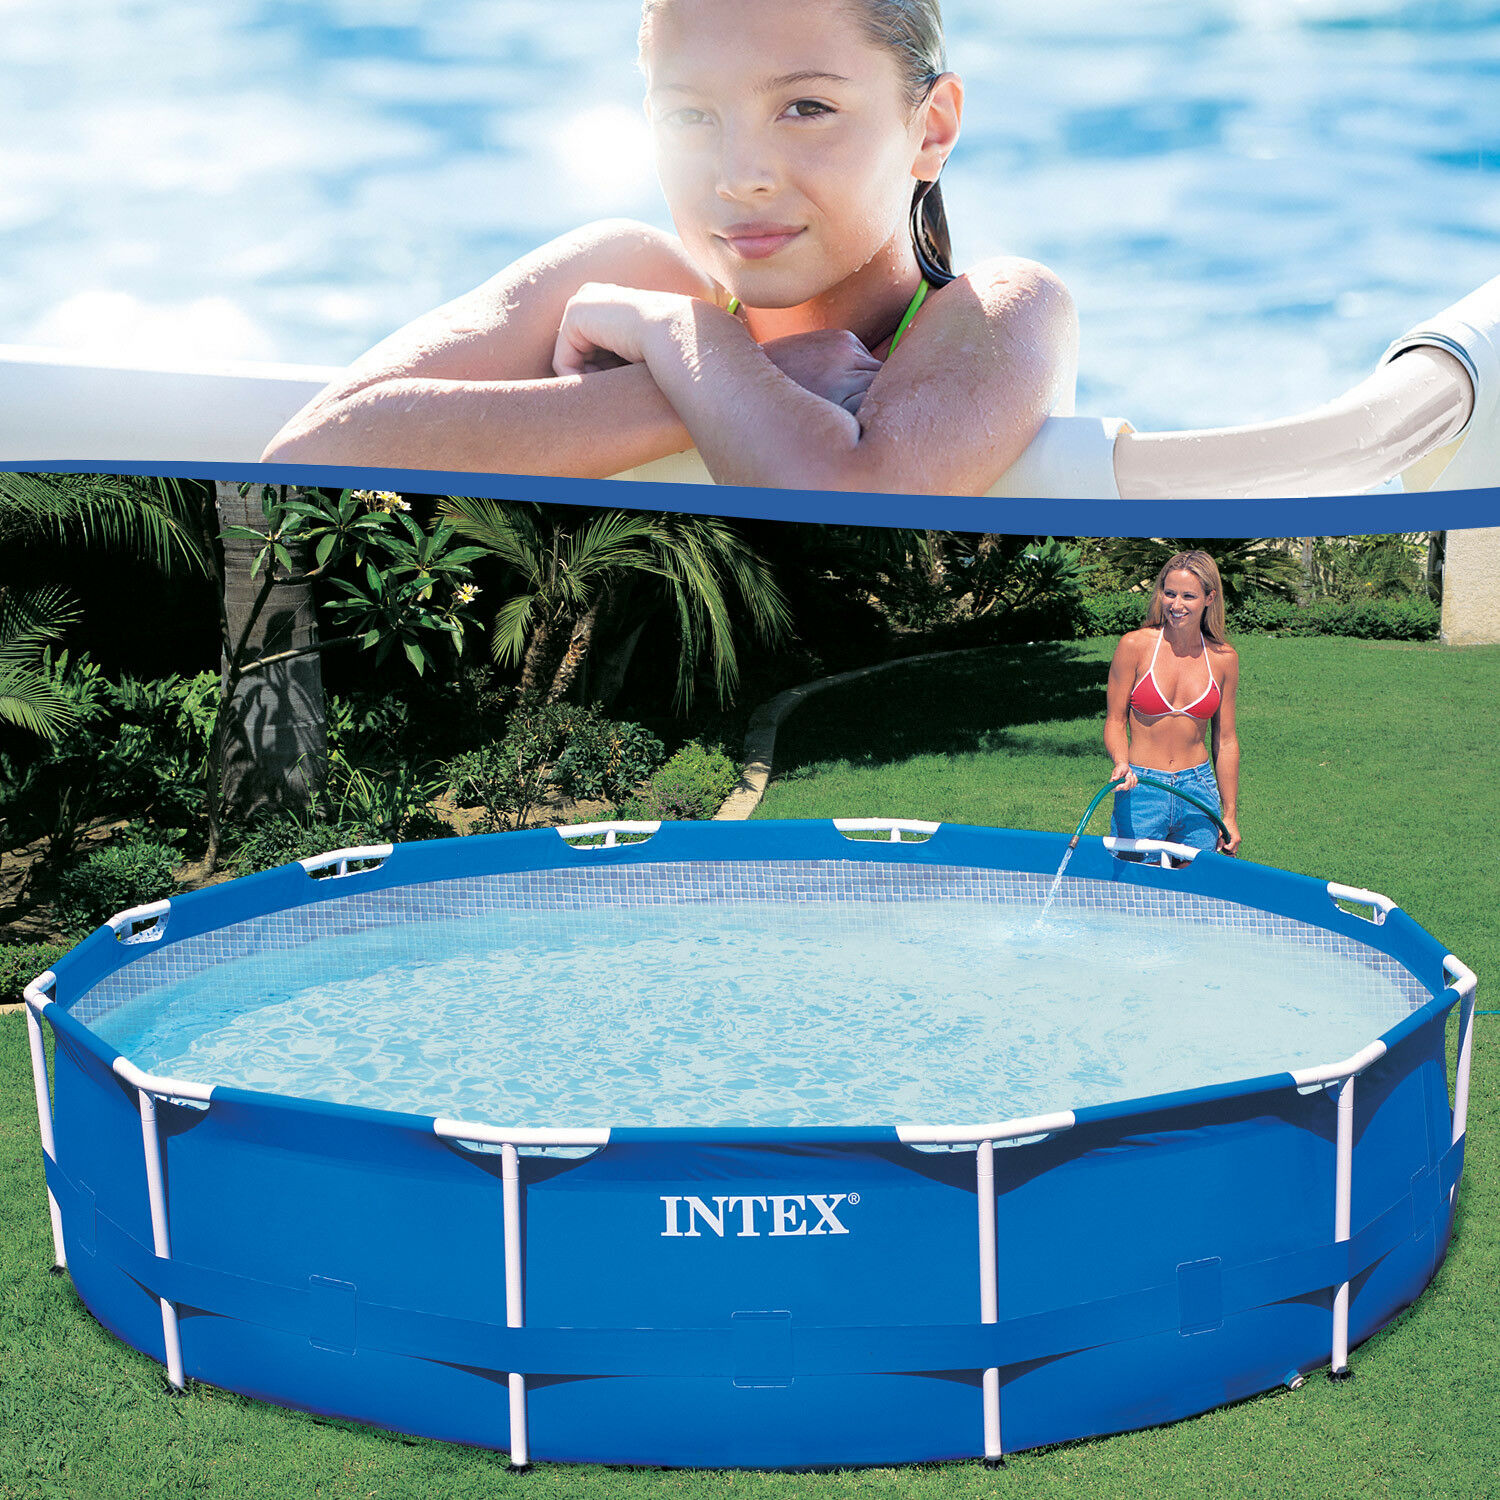 Intex Pool Reinigen Vor Winter Intex 28200 Metal Frame Swimming Pool 305x76 Cm